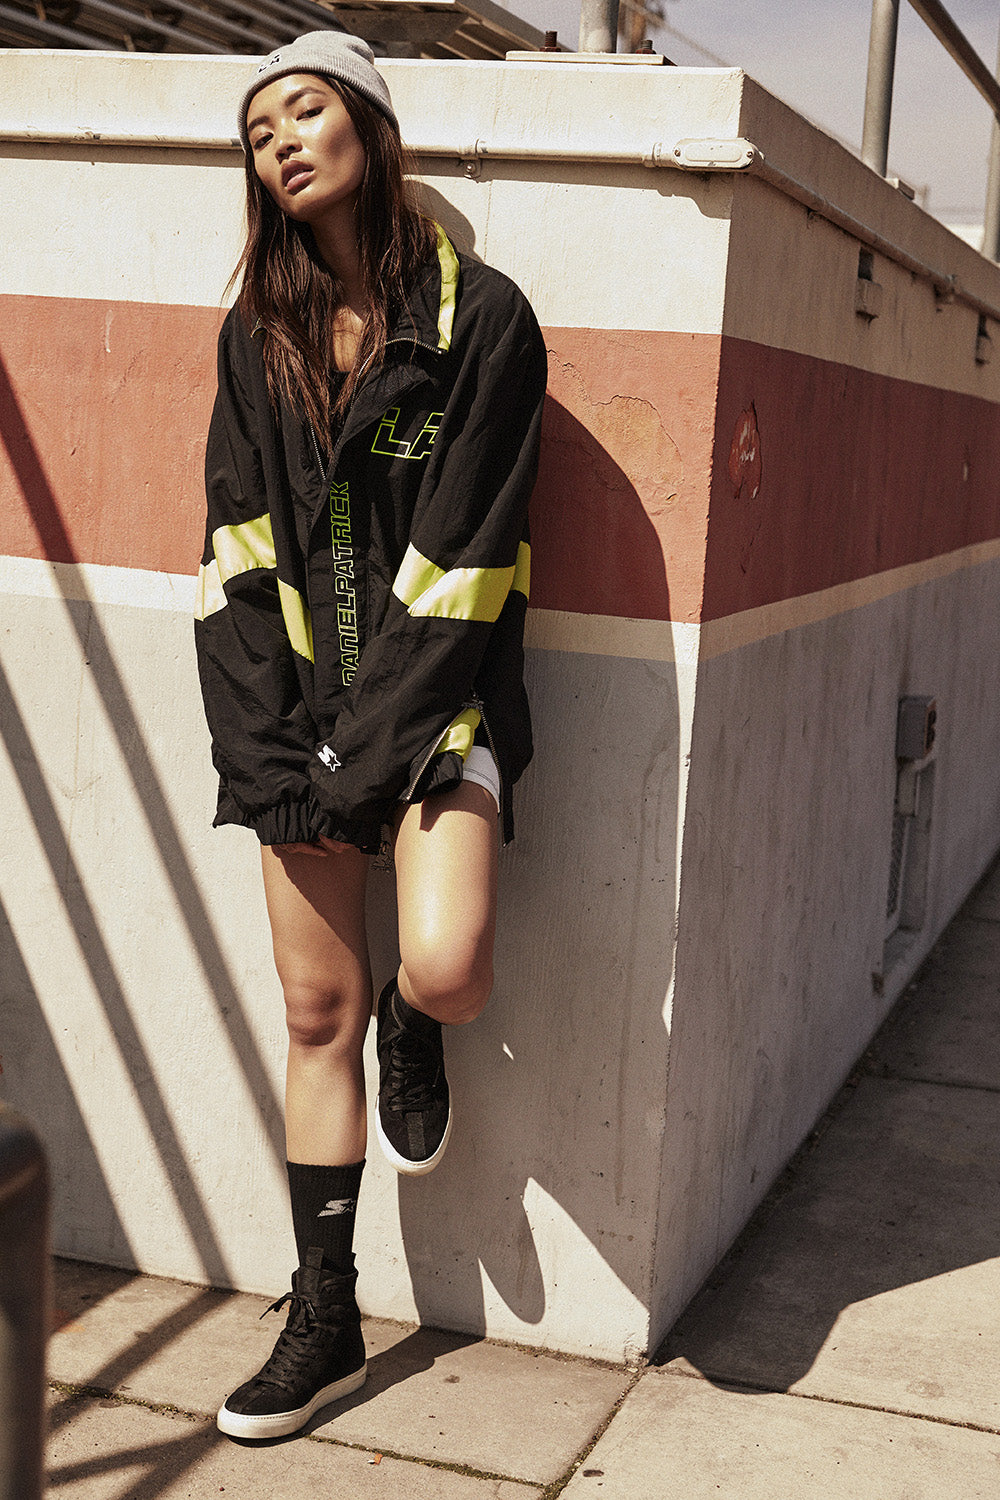 dp starter LA team jacket / black + citrus lime